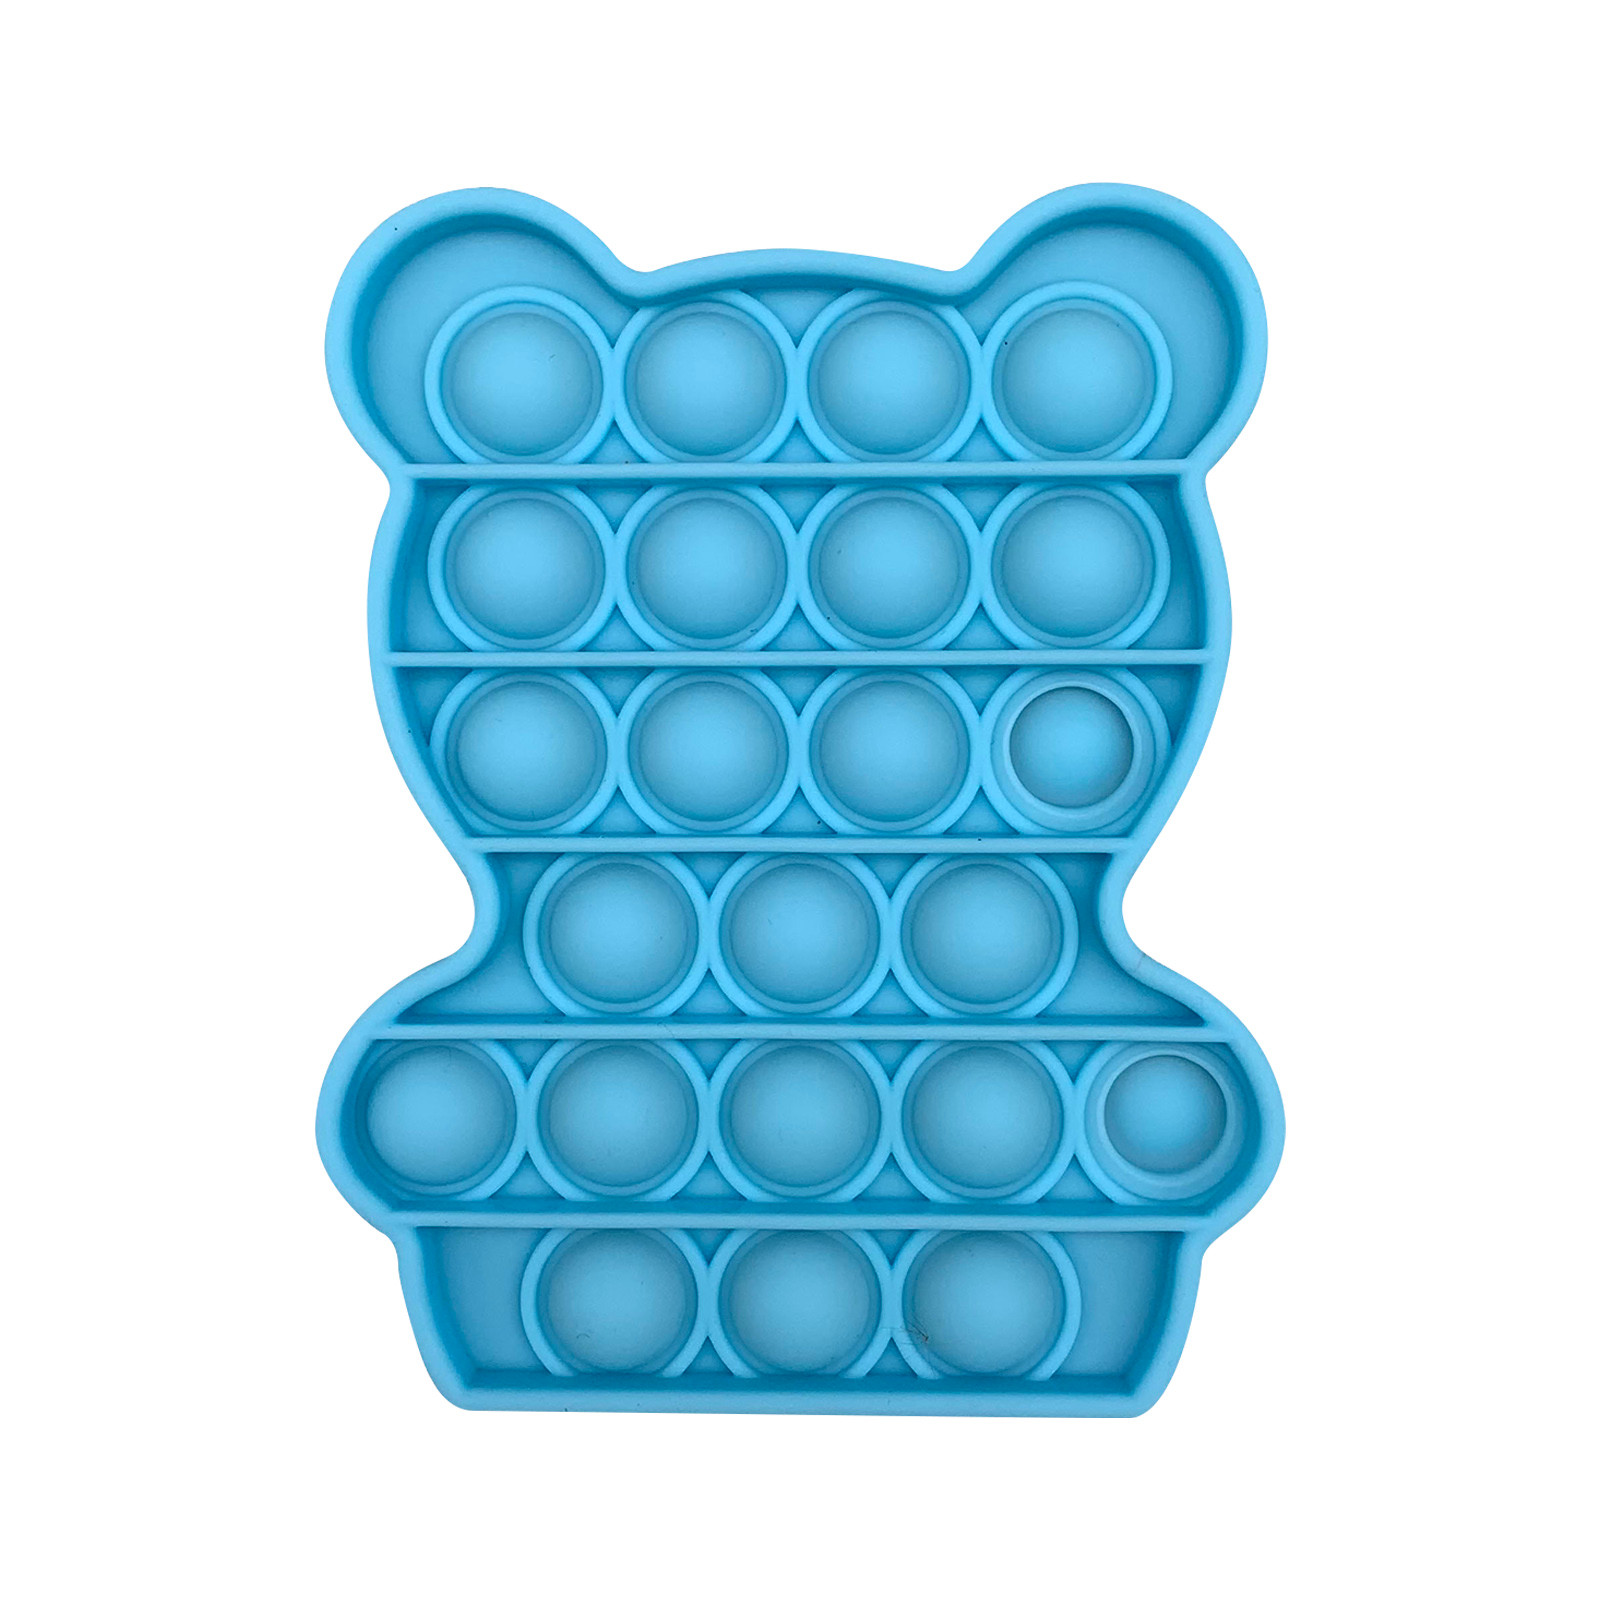 Toy Sensory-Toy Fidget Needs-Stress Push Bubble Reliever Special Soft Increase Focus img4